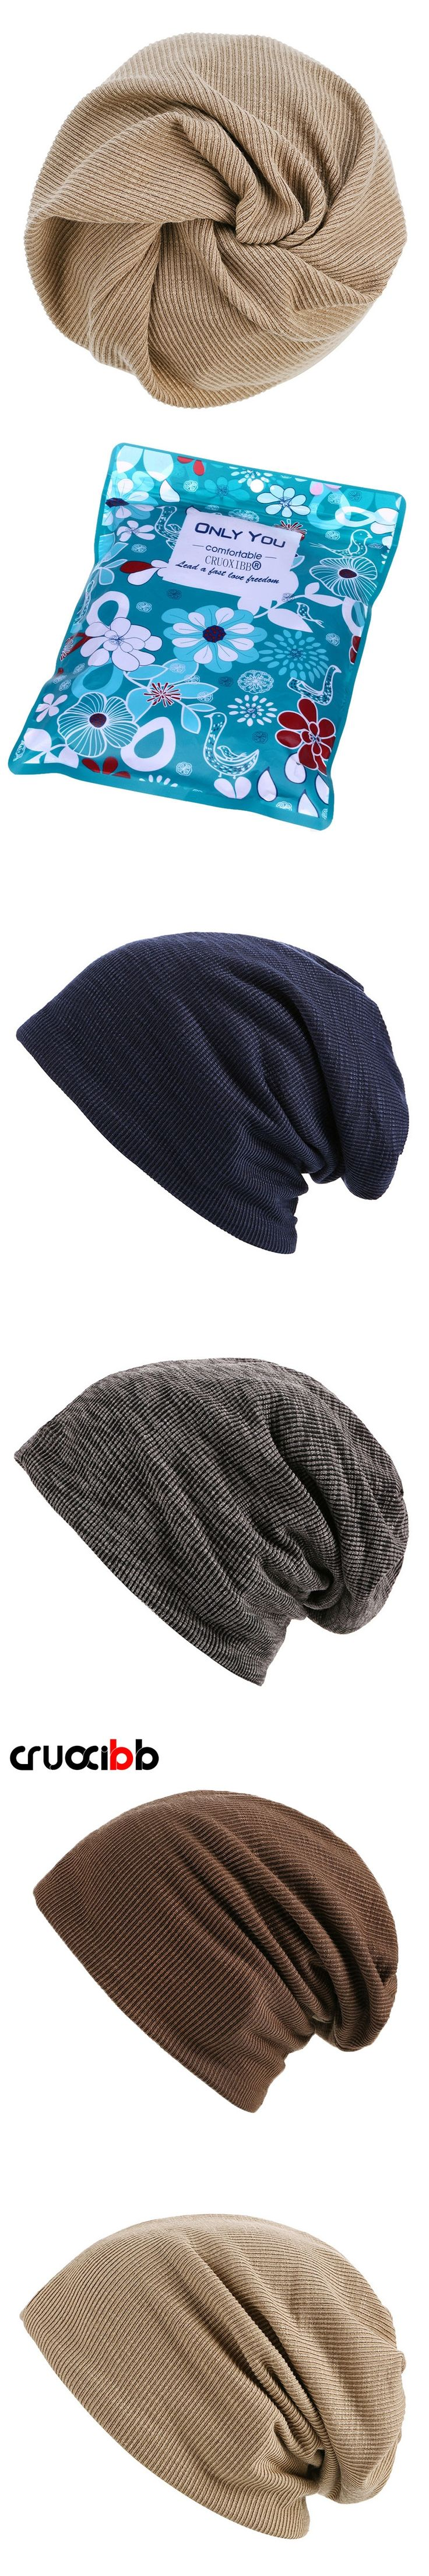 The 25 best knitted balaclava ideas on pinterest knitting cruoxibb brand solid skullies men women new arrivals beanies knitted cap cotton layer style causal bonnet bankloansurffo Images